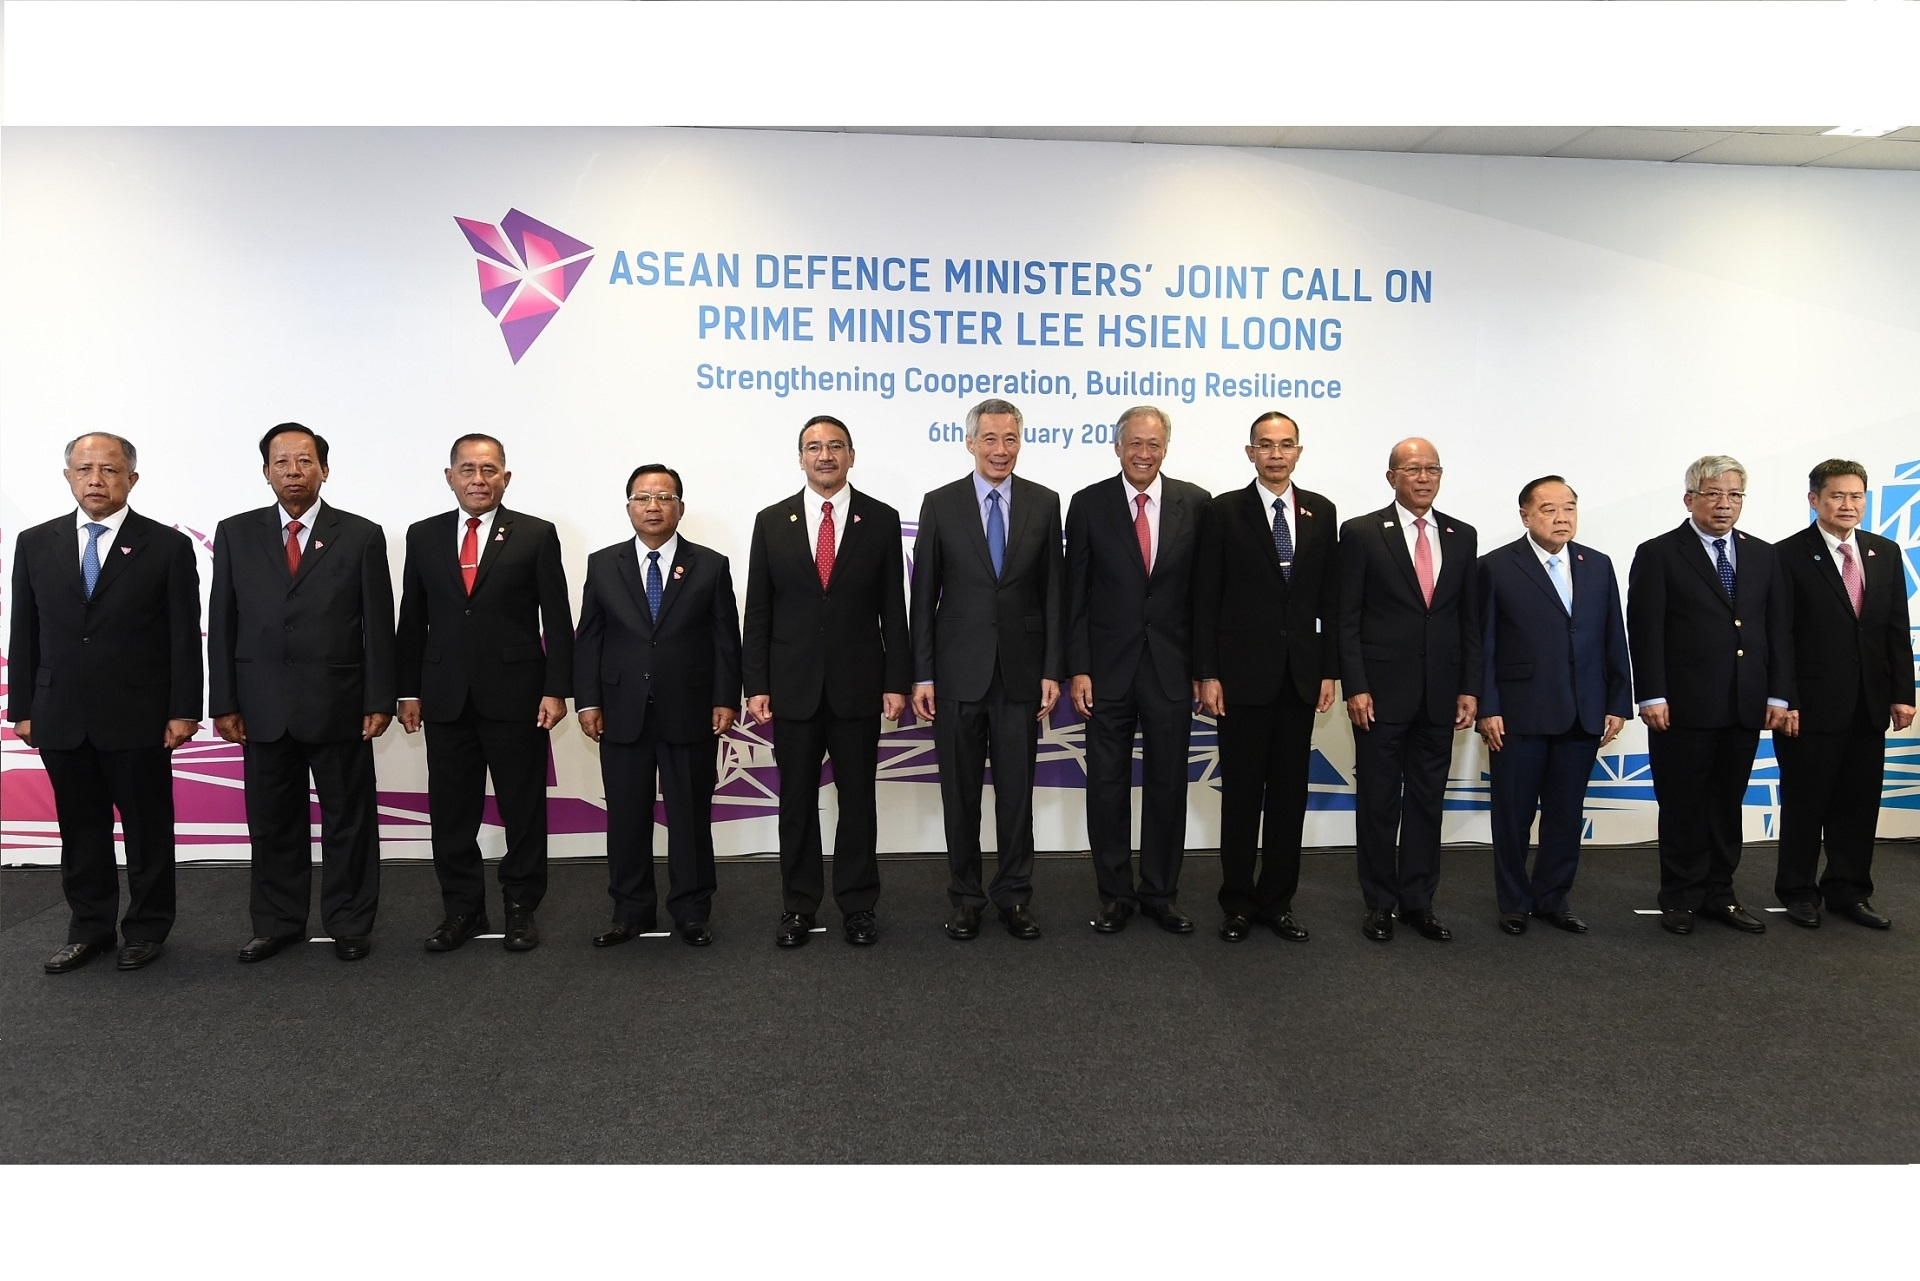 Defense-security cooperation among ASEAN nations in 2018